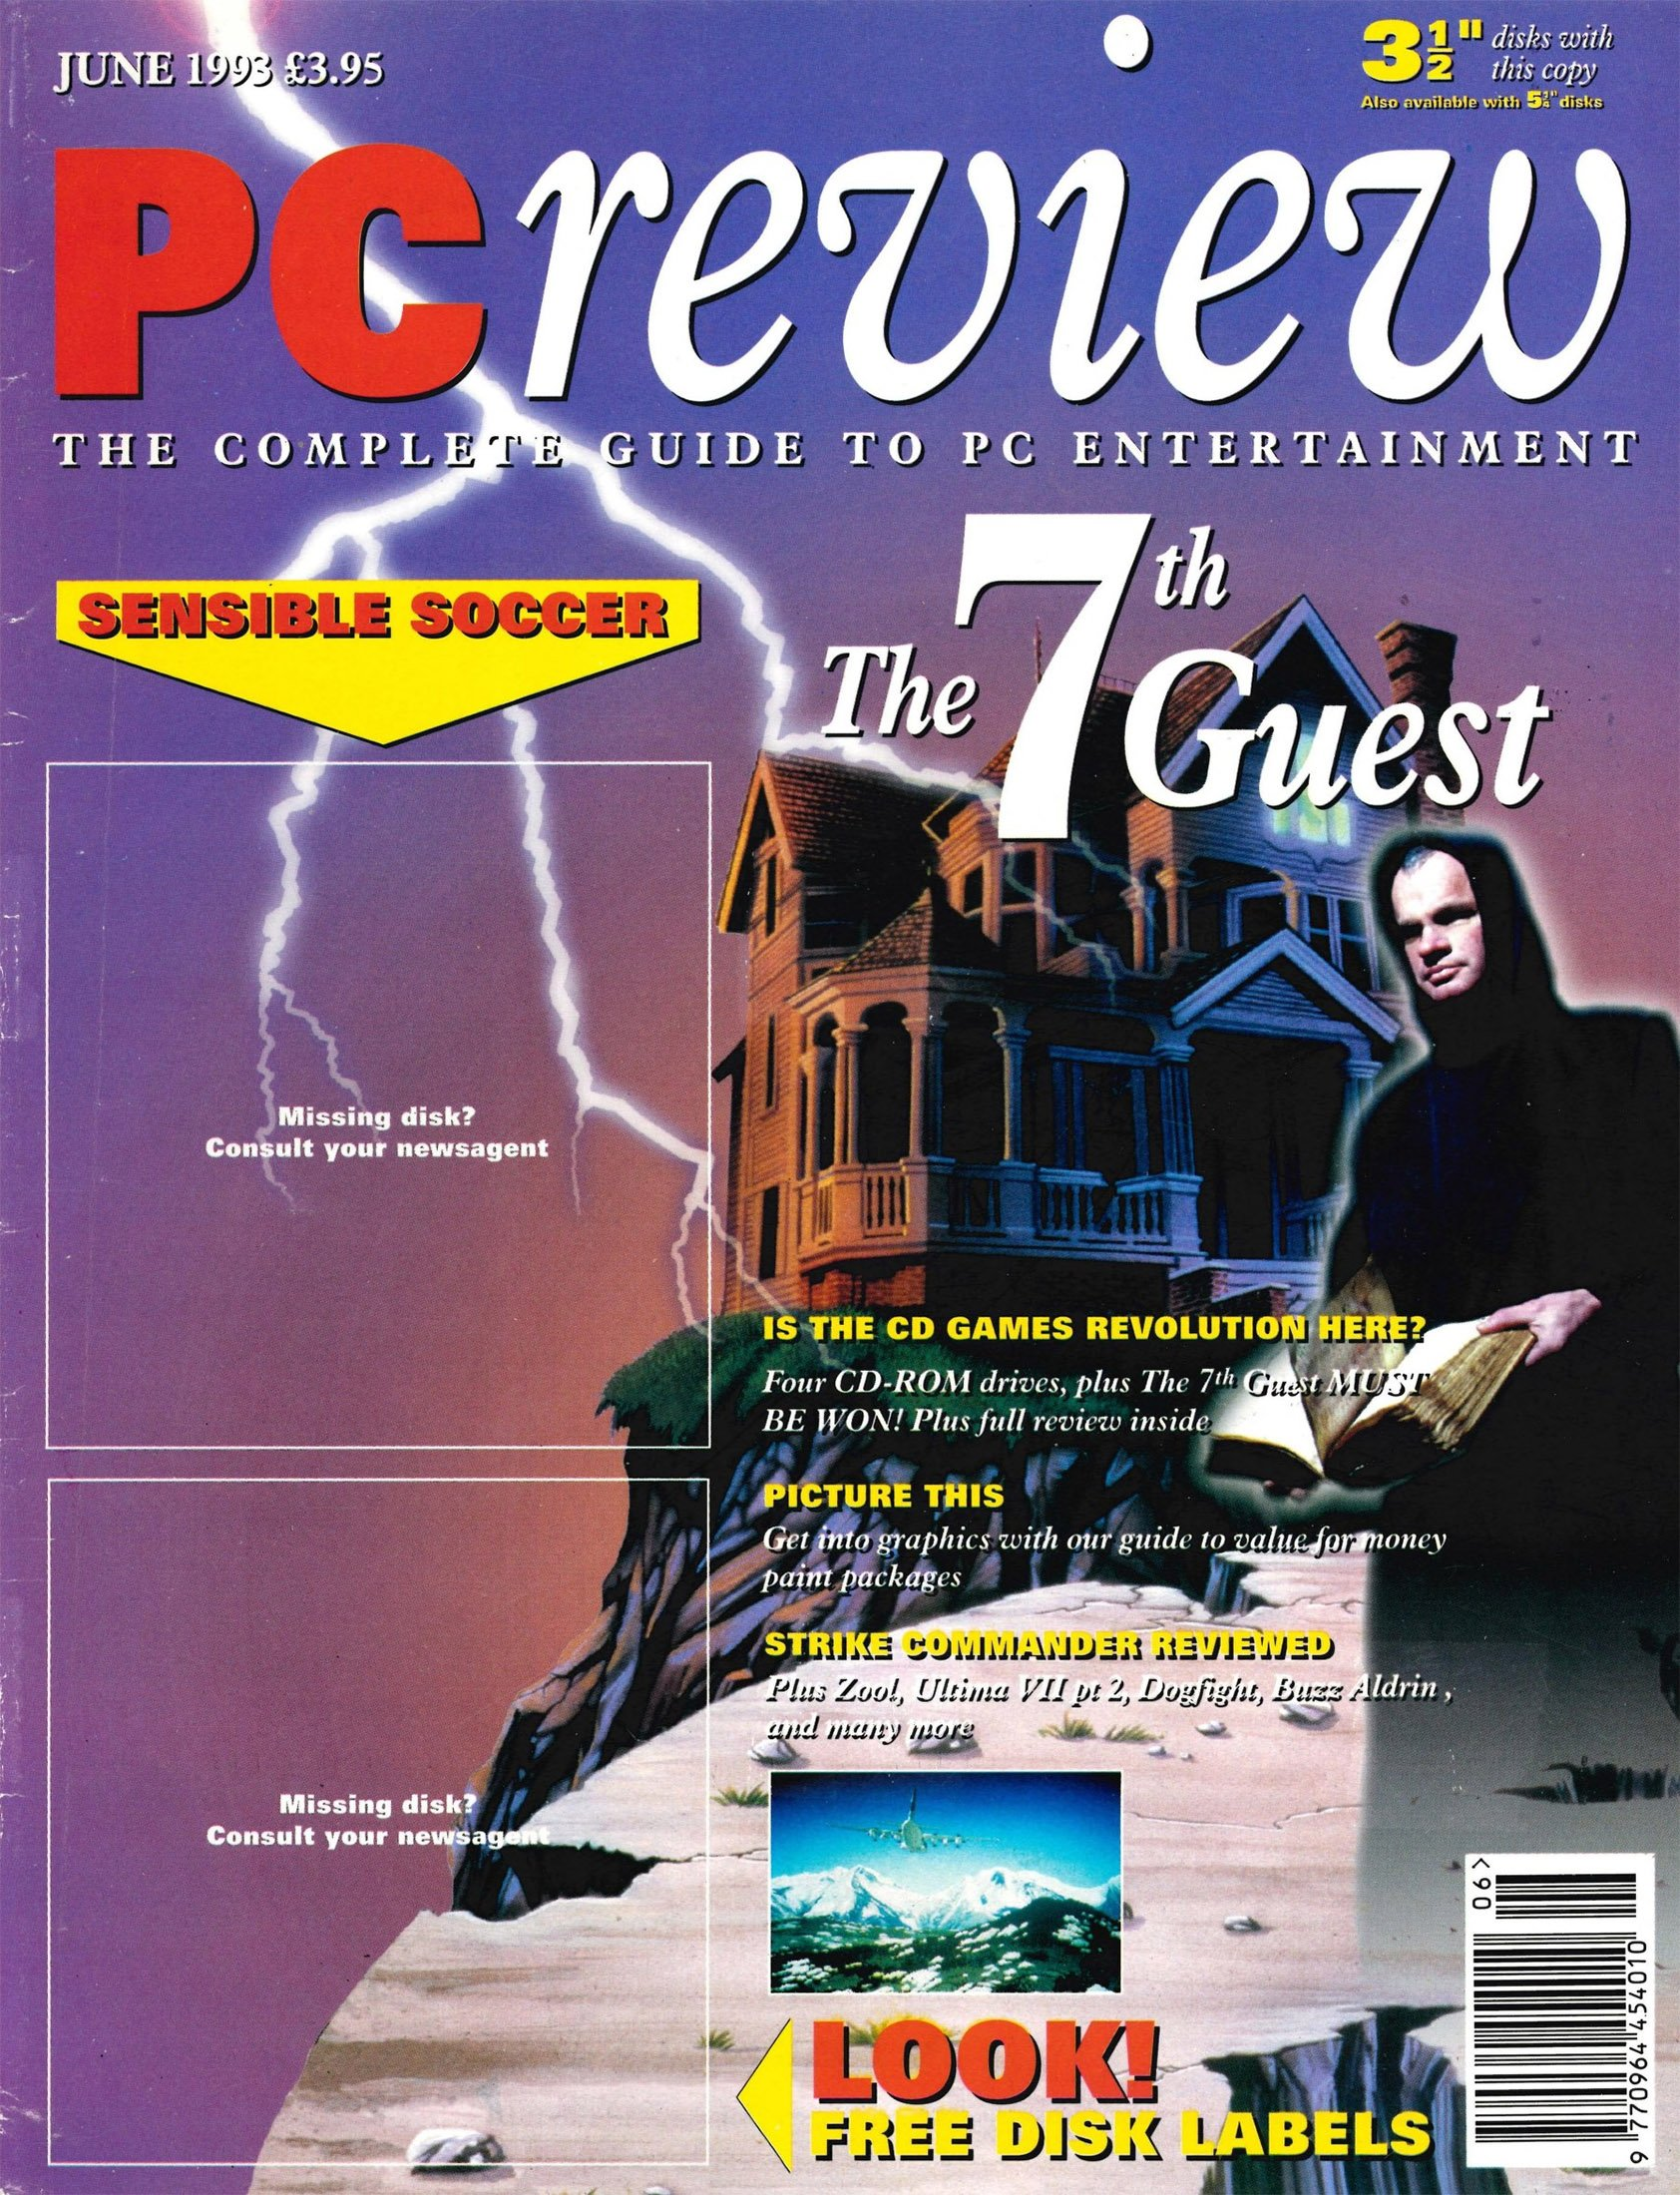 PC Review Issue 20 (June 1993)